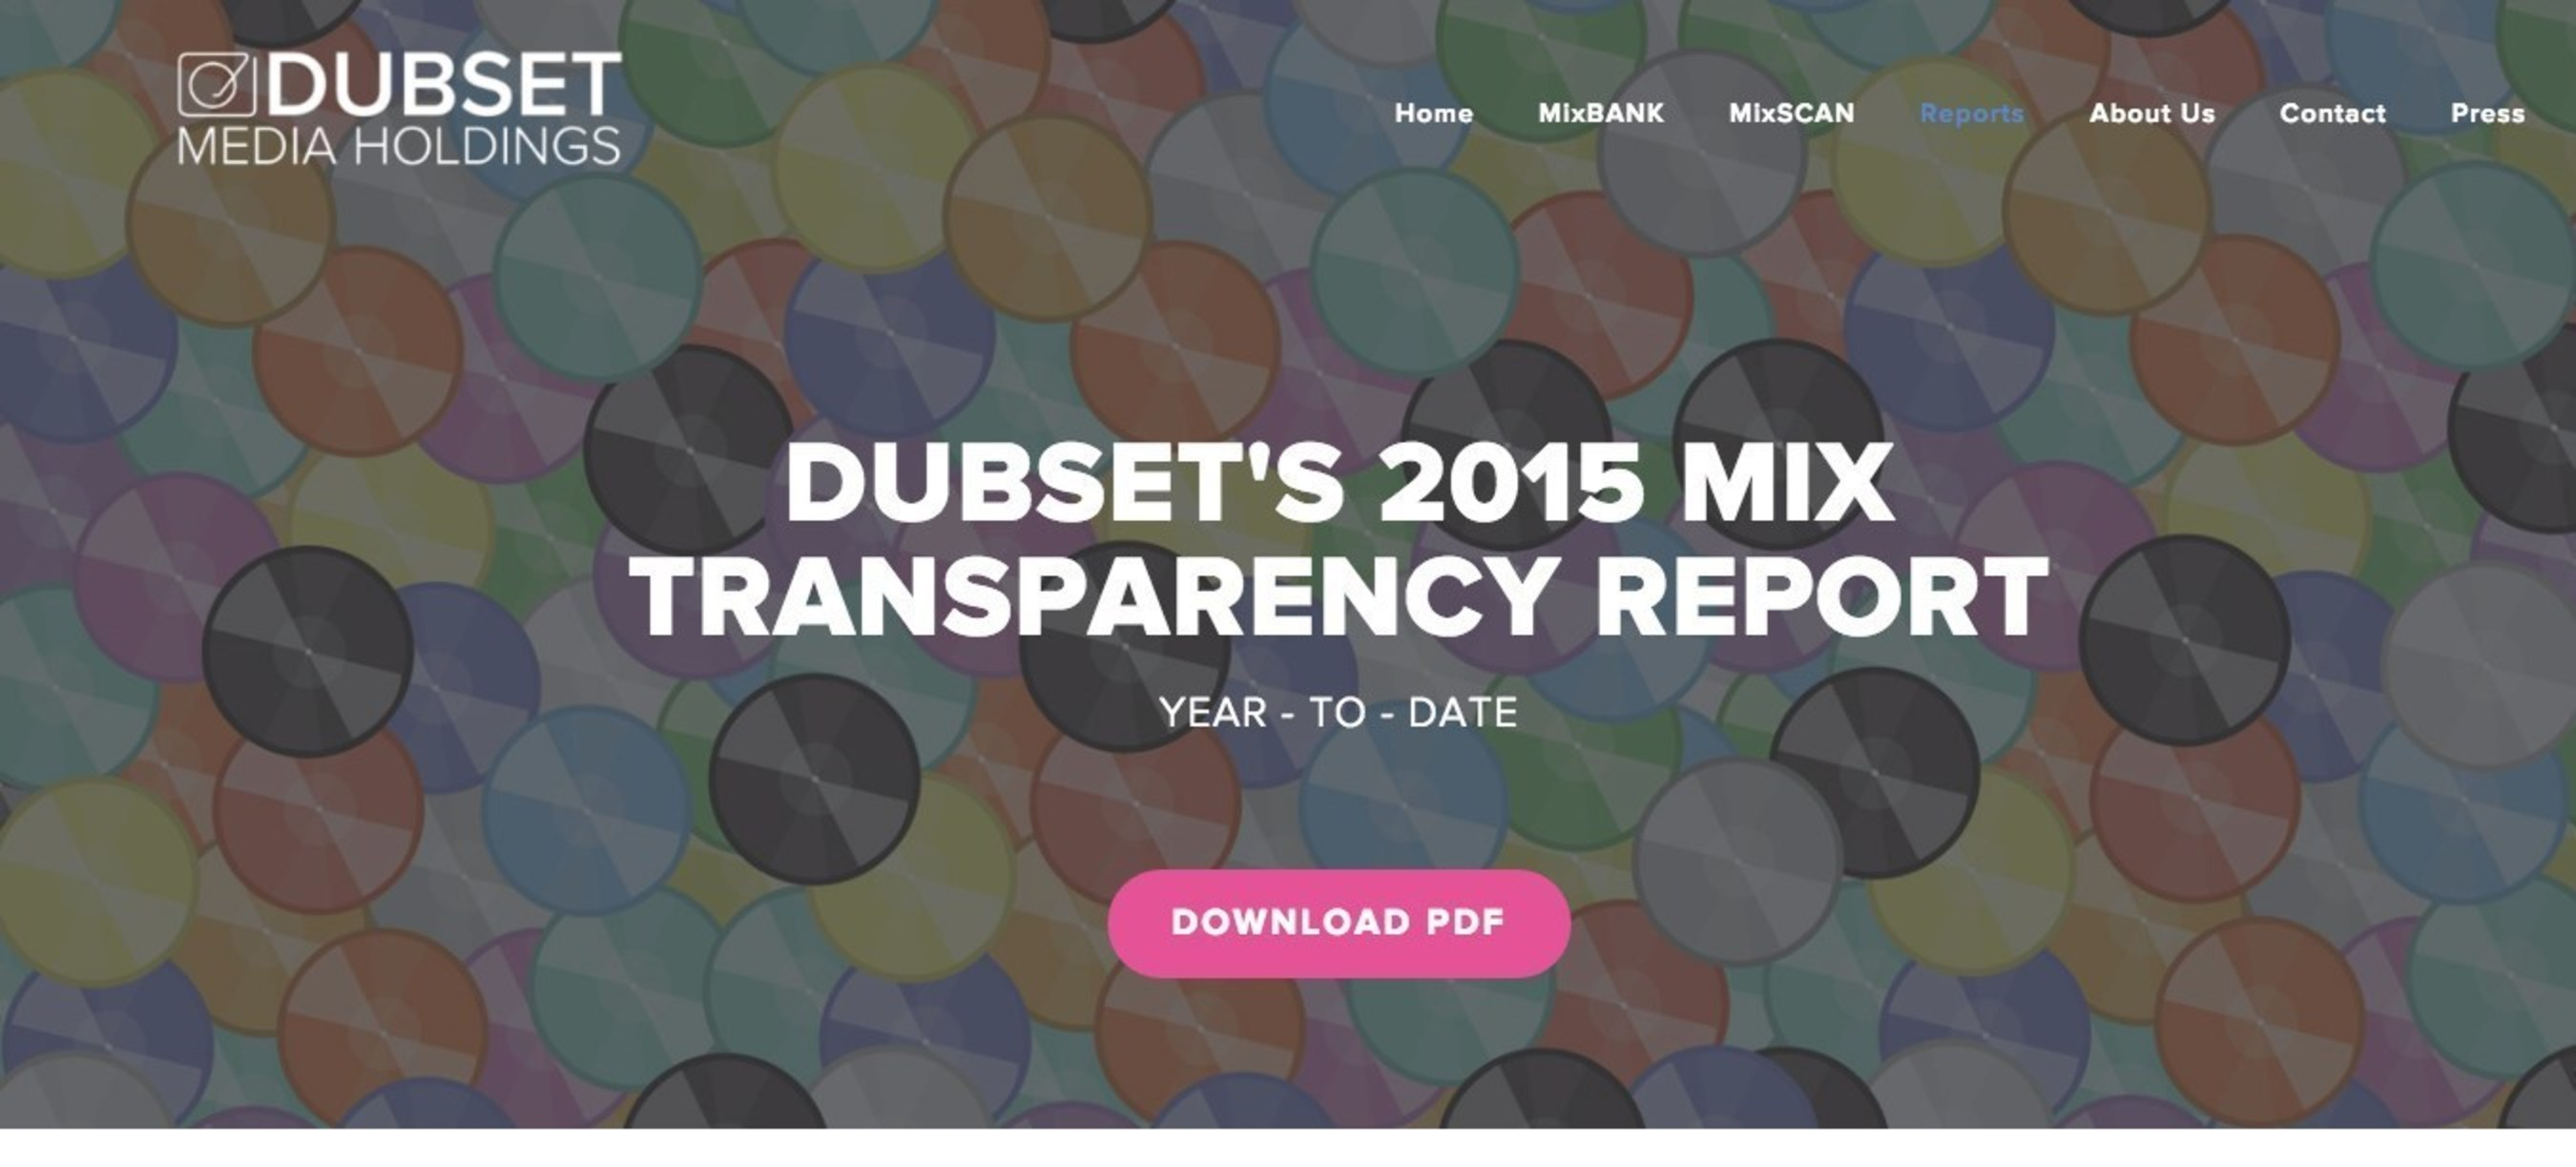 Dubset Releases Inaugural Mix Transparency Report: Atlantic Records, David Guetta Most Sampled